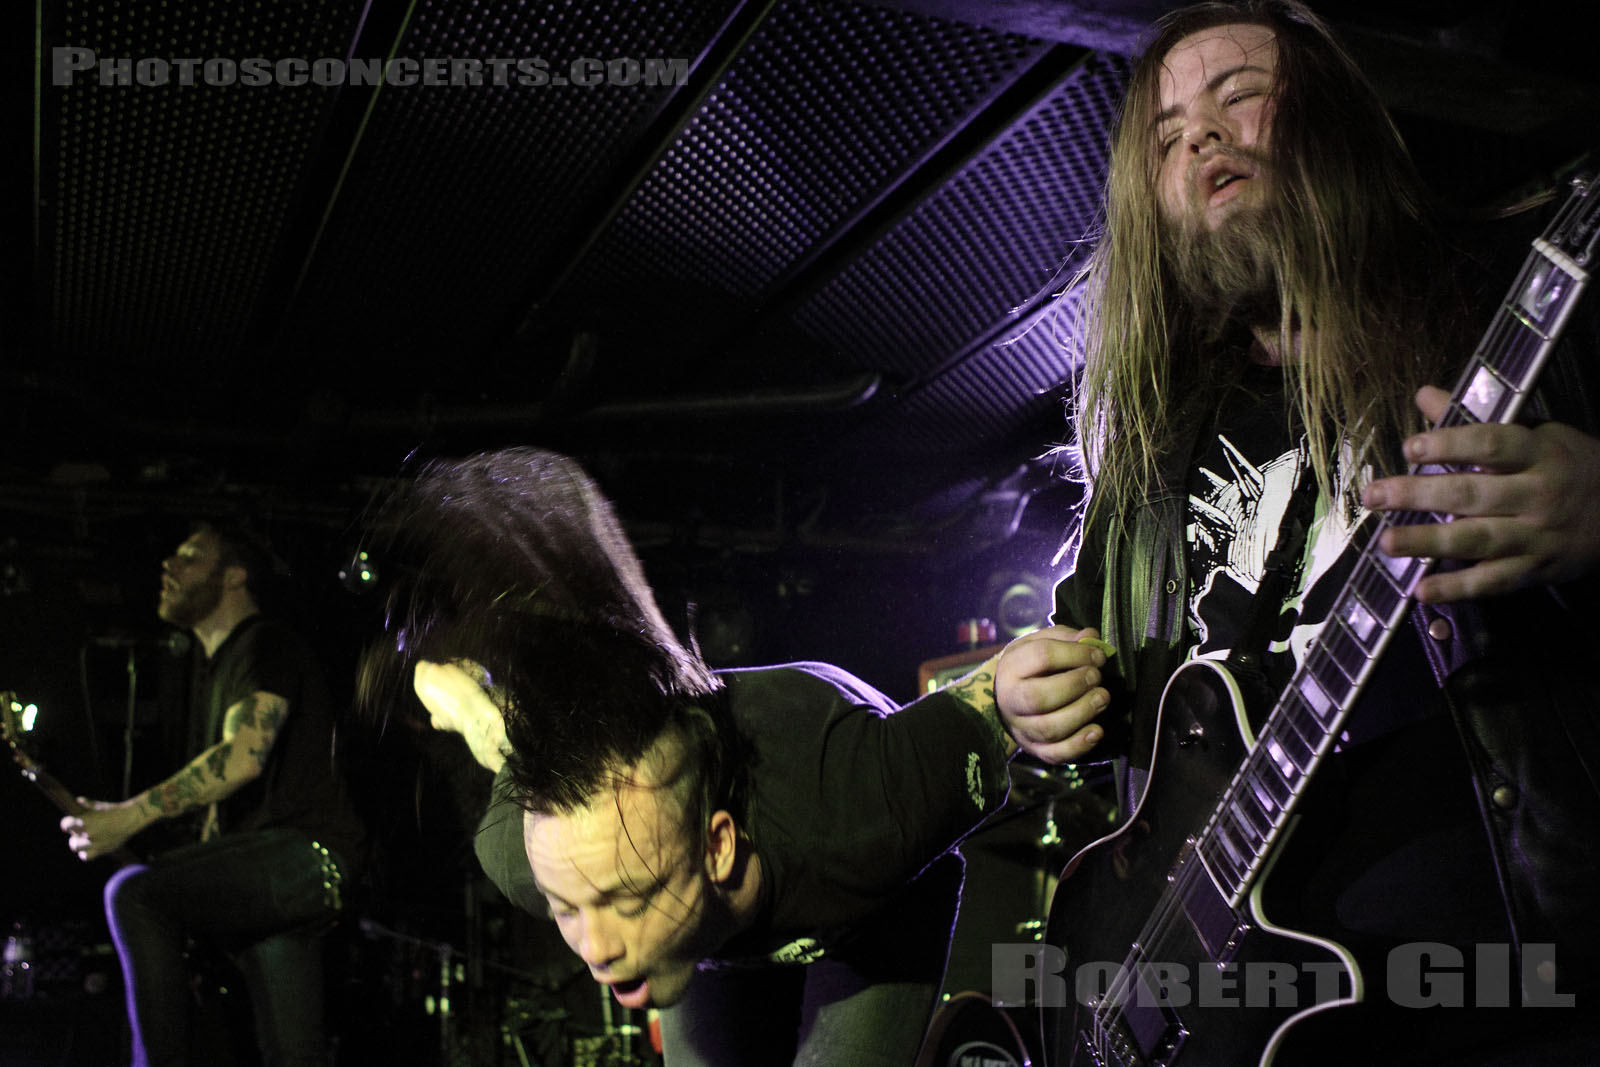 CANCER BATS - 2010-04-18 - PARIS - Batofar